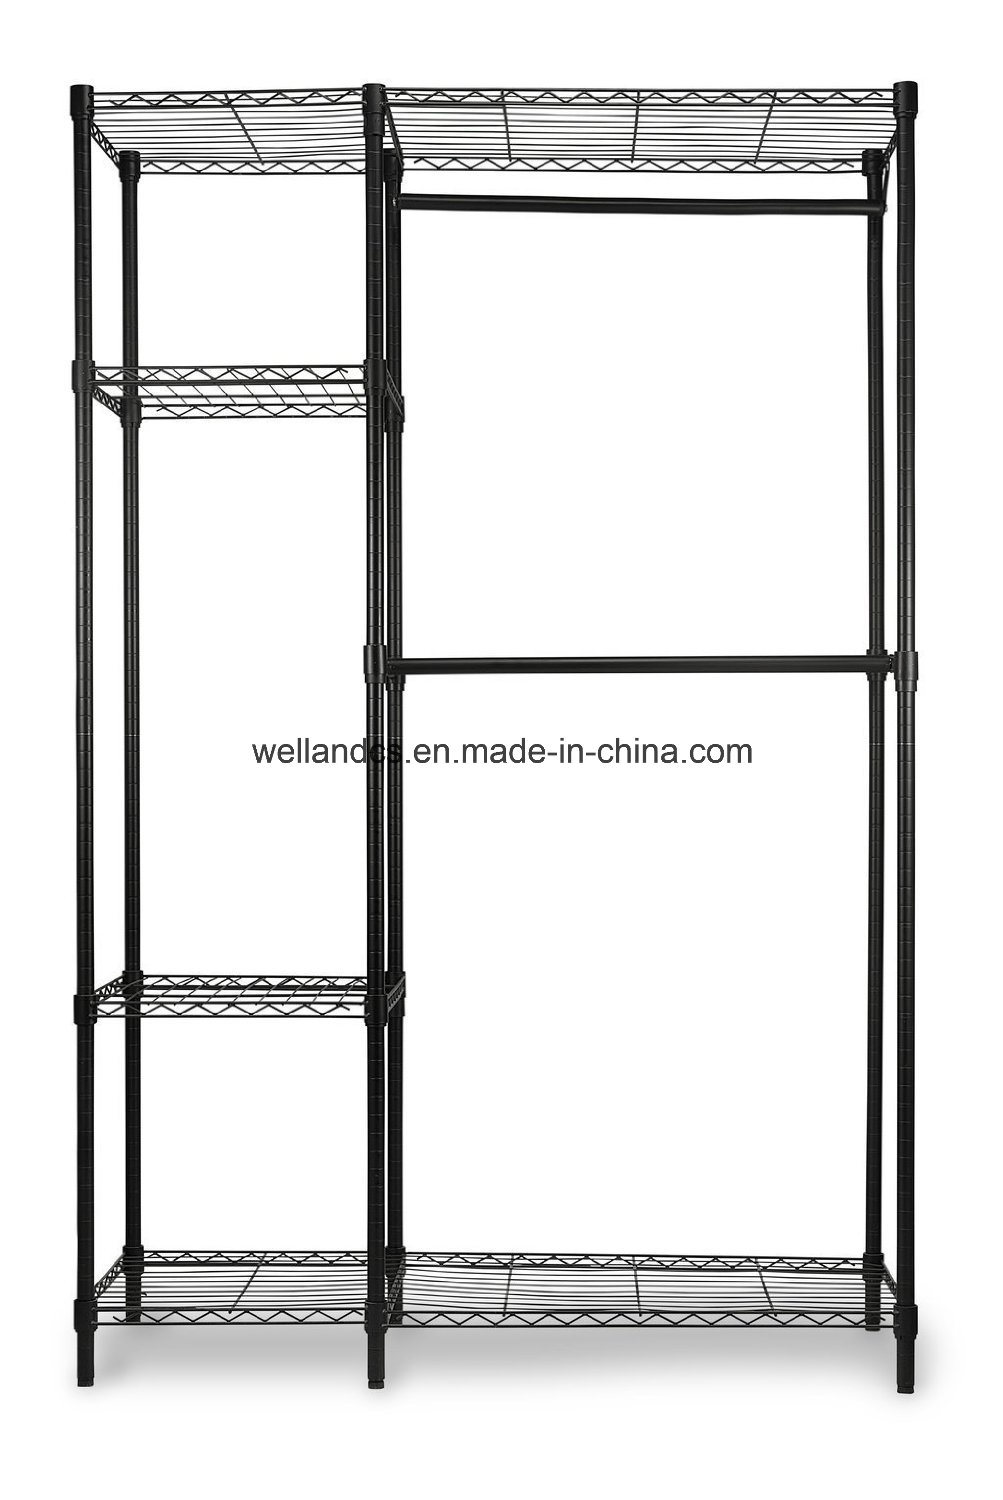 China Customized New Style Garment Wire Shelving Design Carbon Steel ...